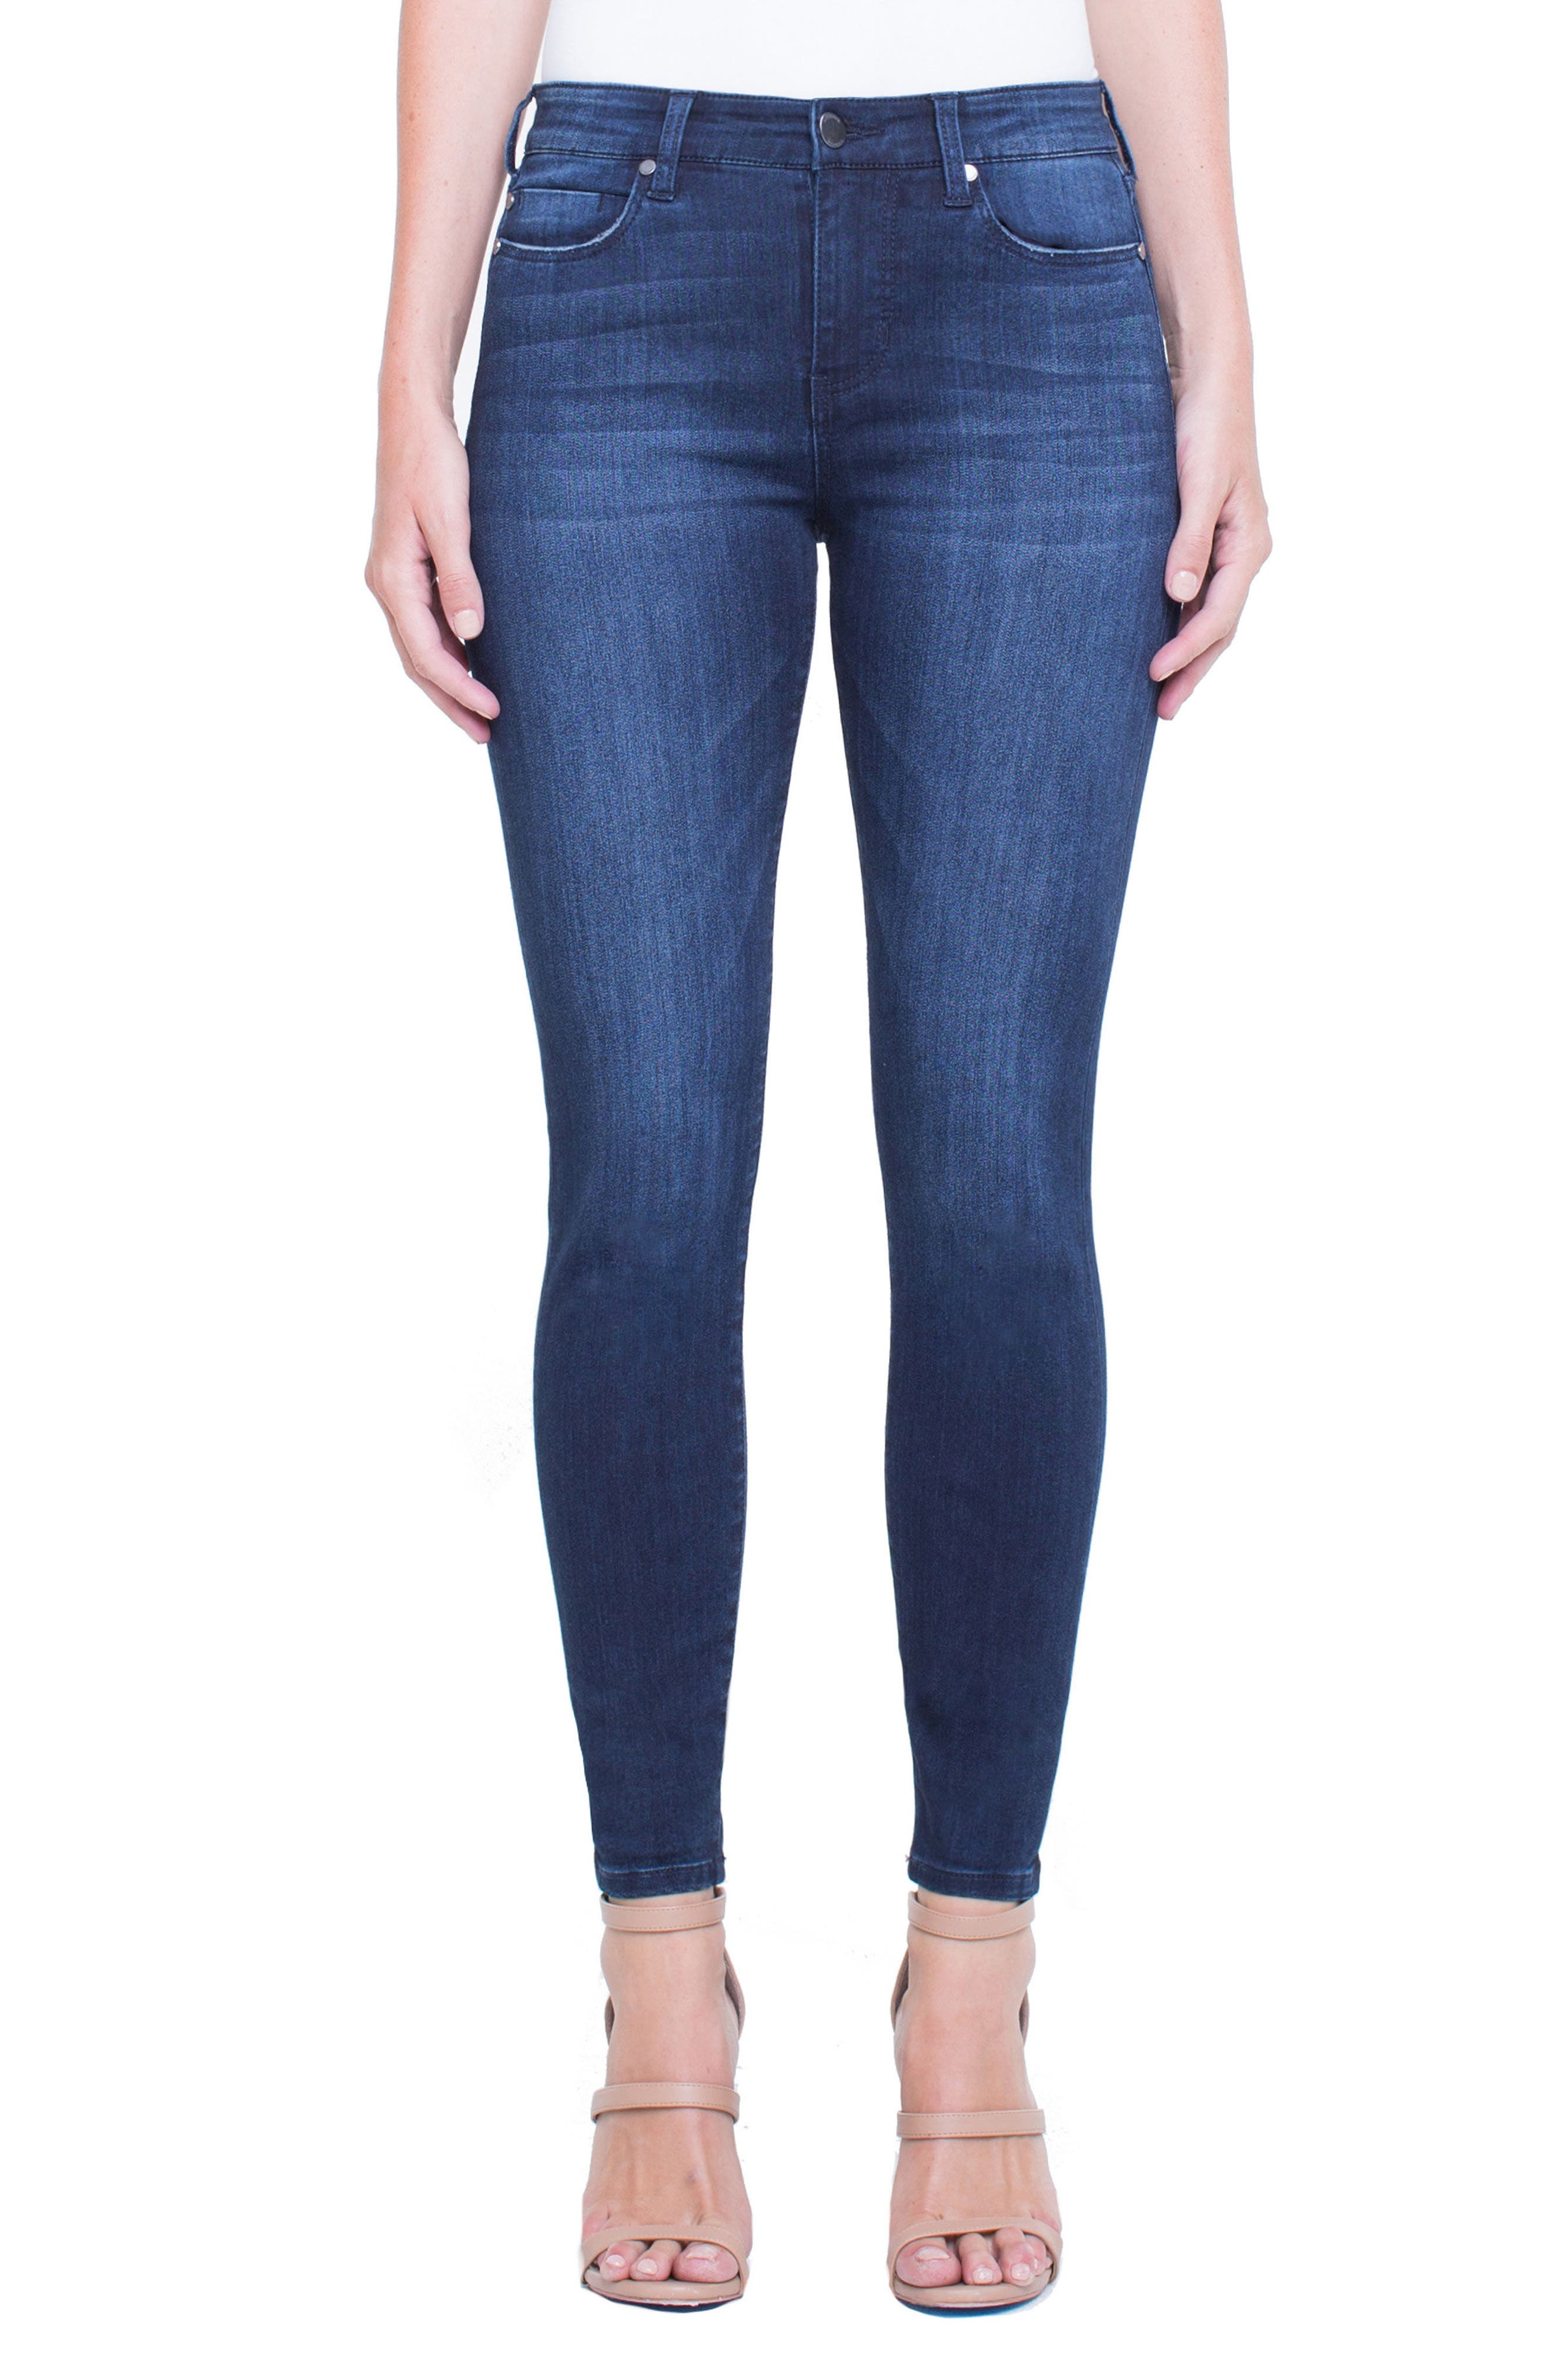 Jeans Company Penny Ankle Skinny Jeans